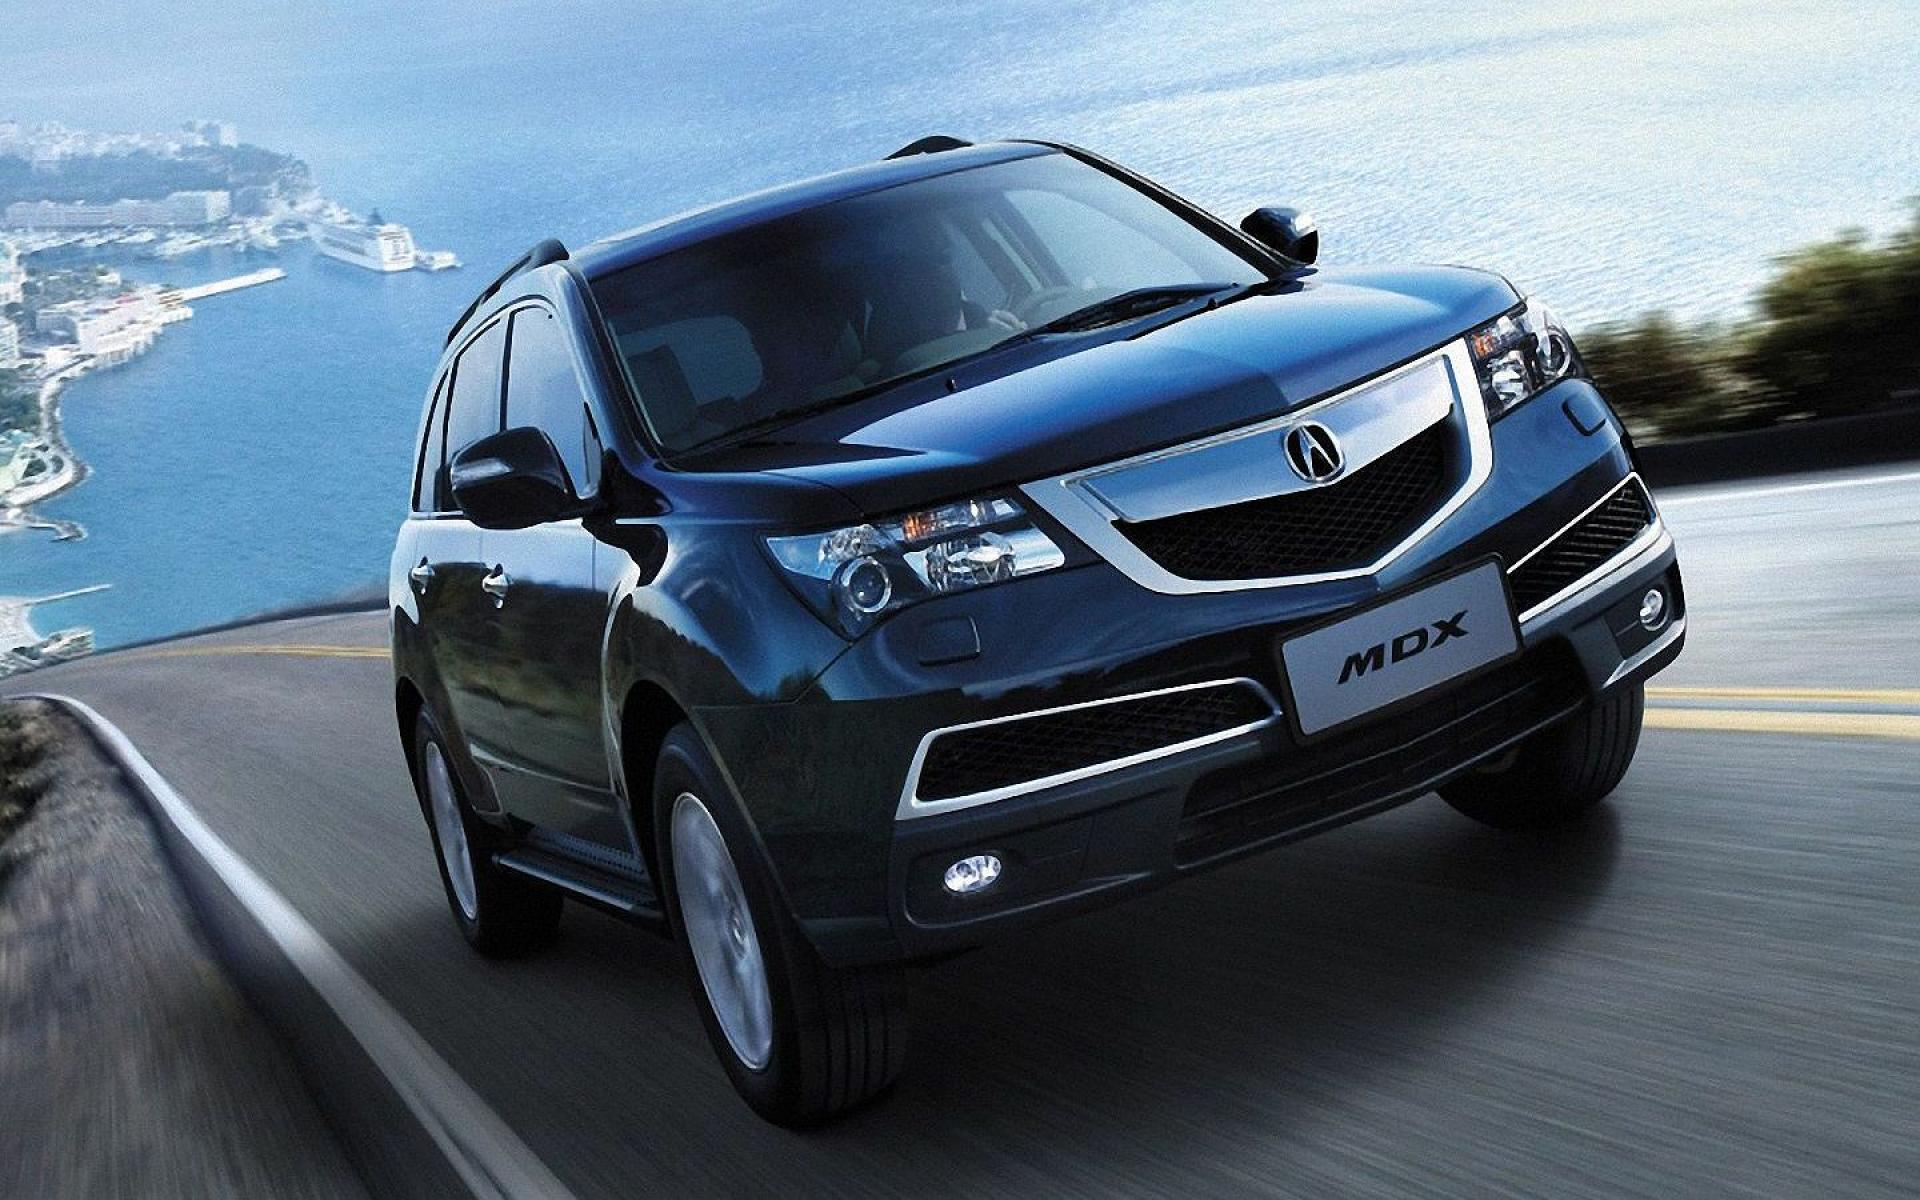 acura mdx Wallpapers hd A2 road